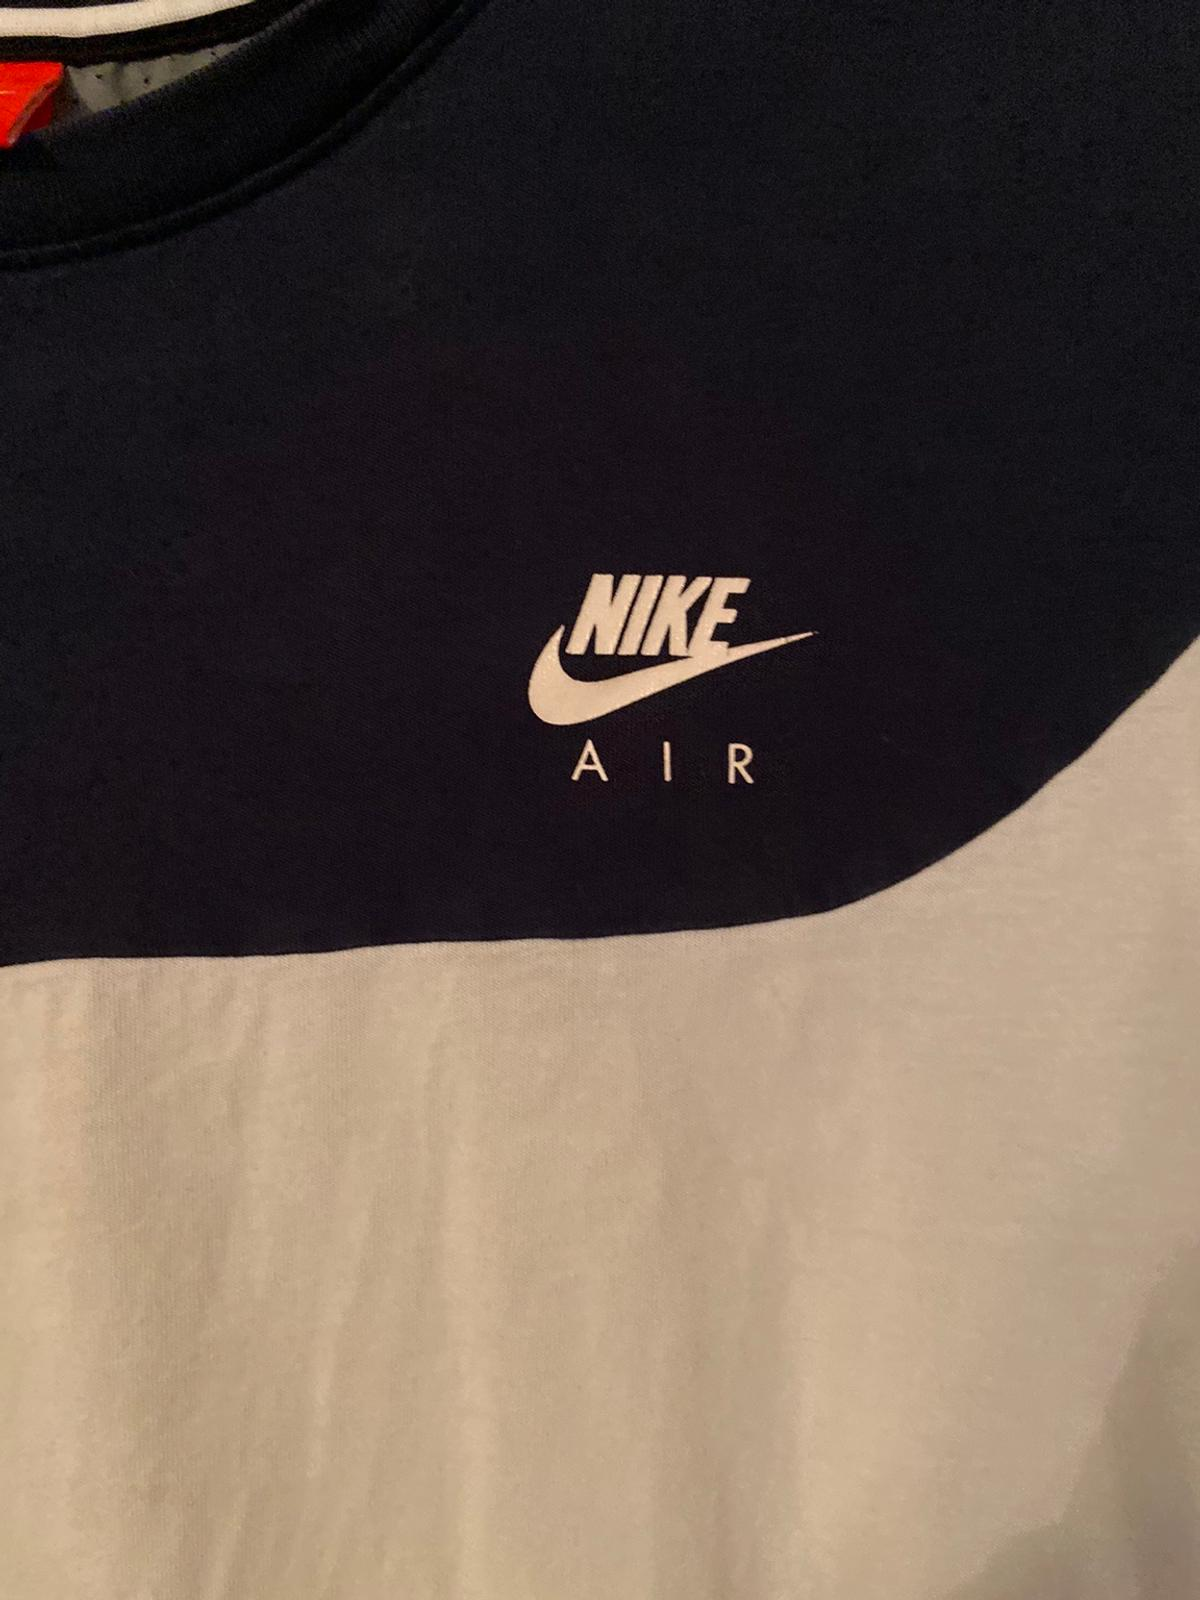 Men's Nike T shirt in Blaby for £12.00